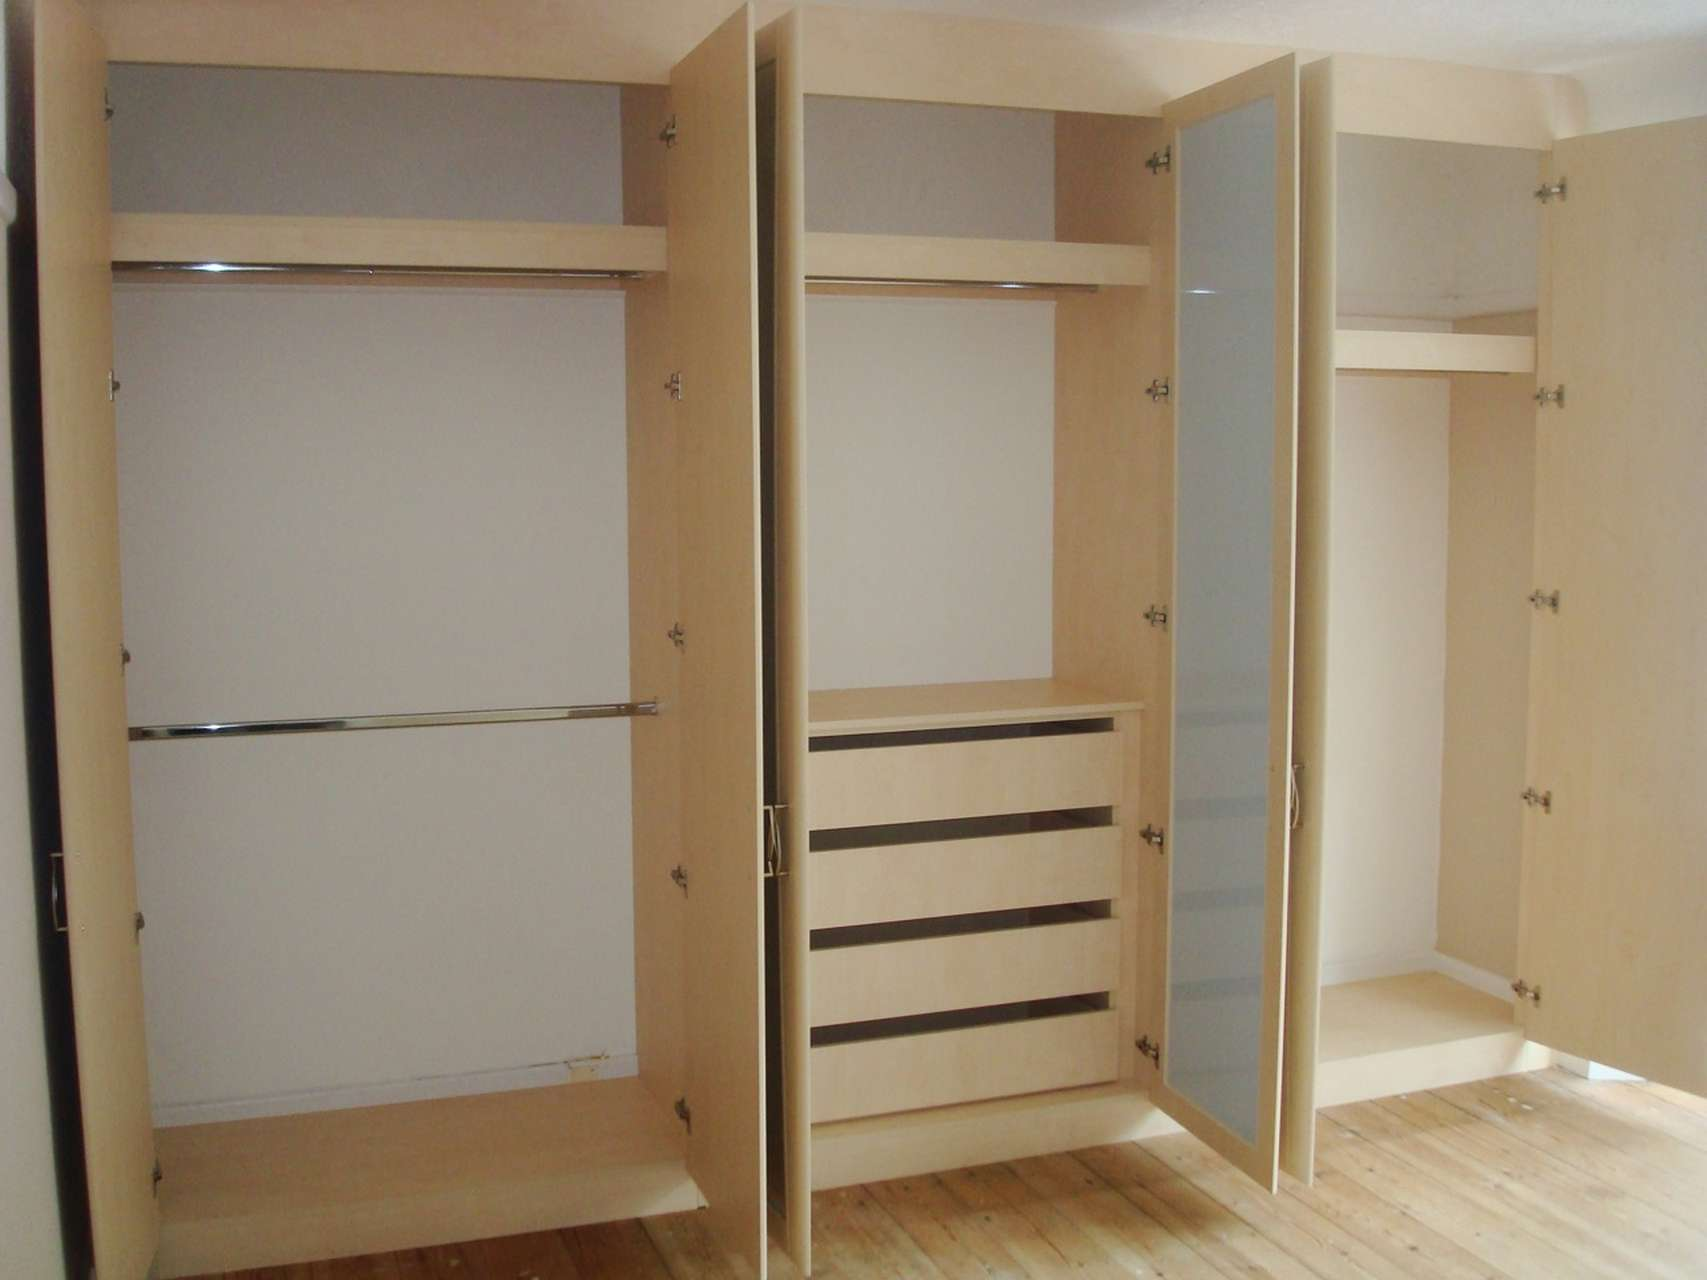 fitted wardrobe interiors custom world bedrooms. Black Bedroom Furniture Sets. Home Design Ideas